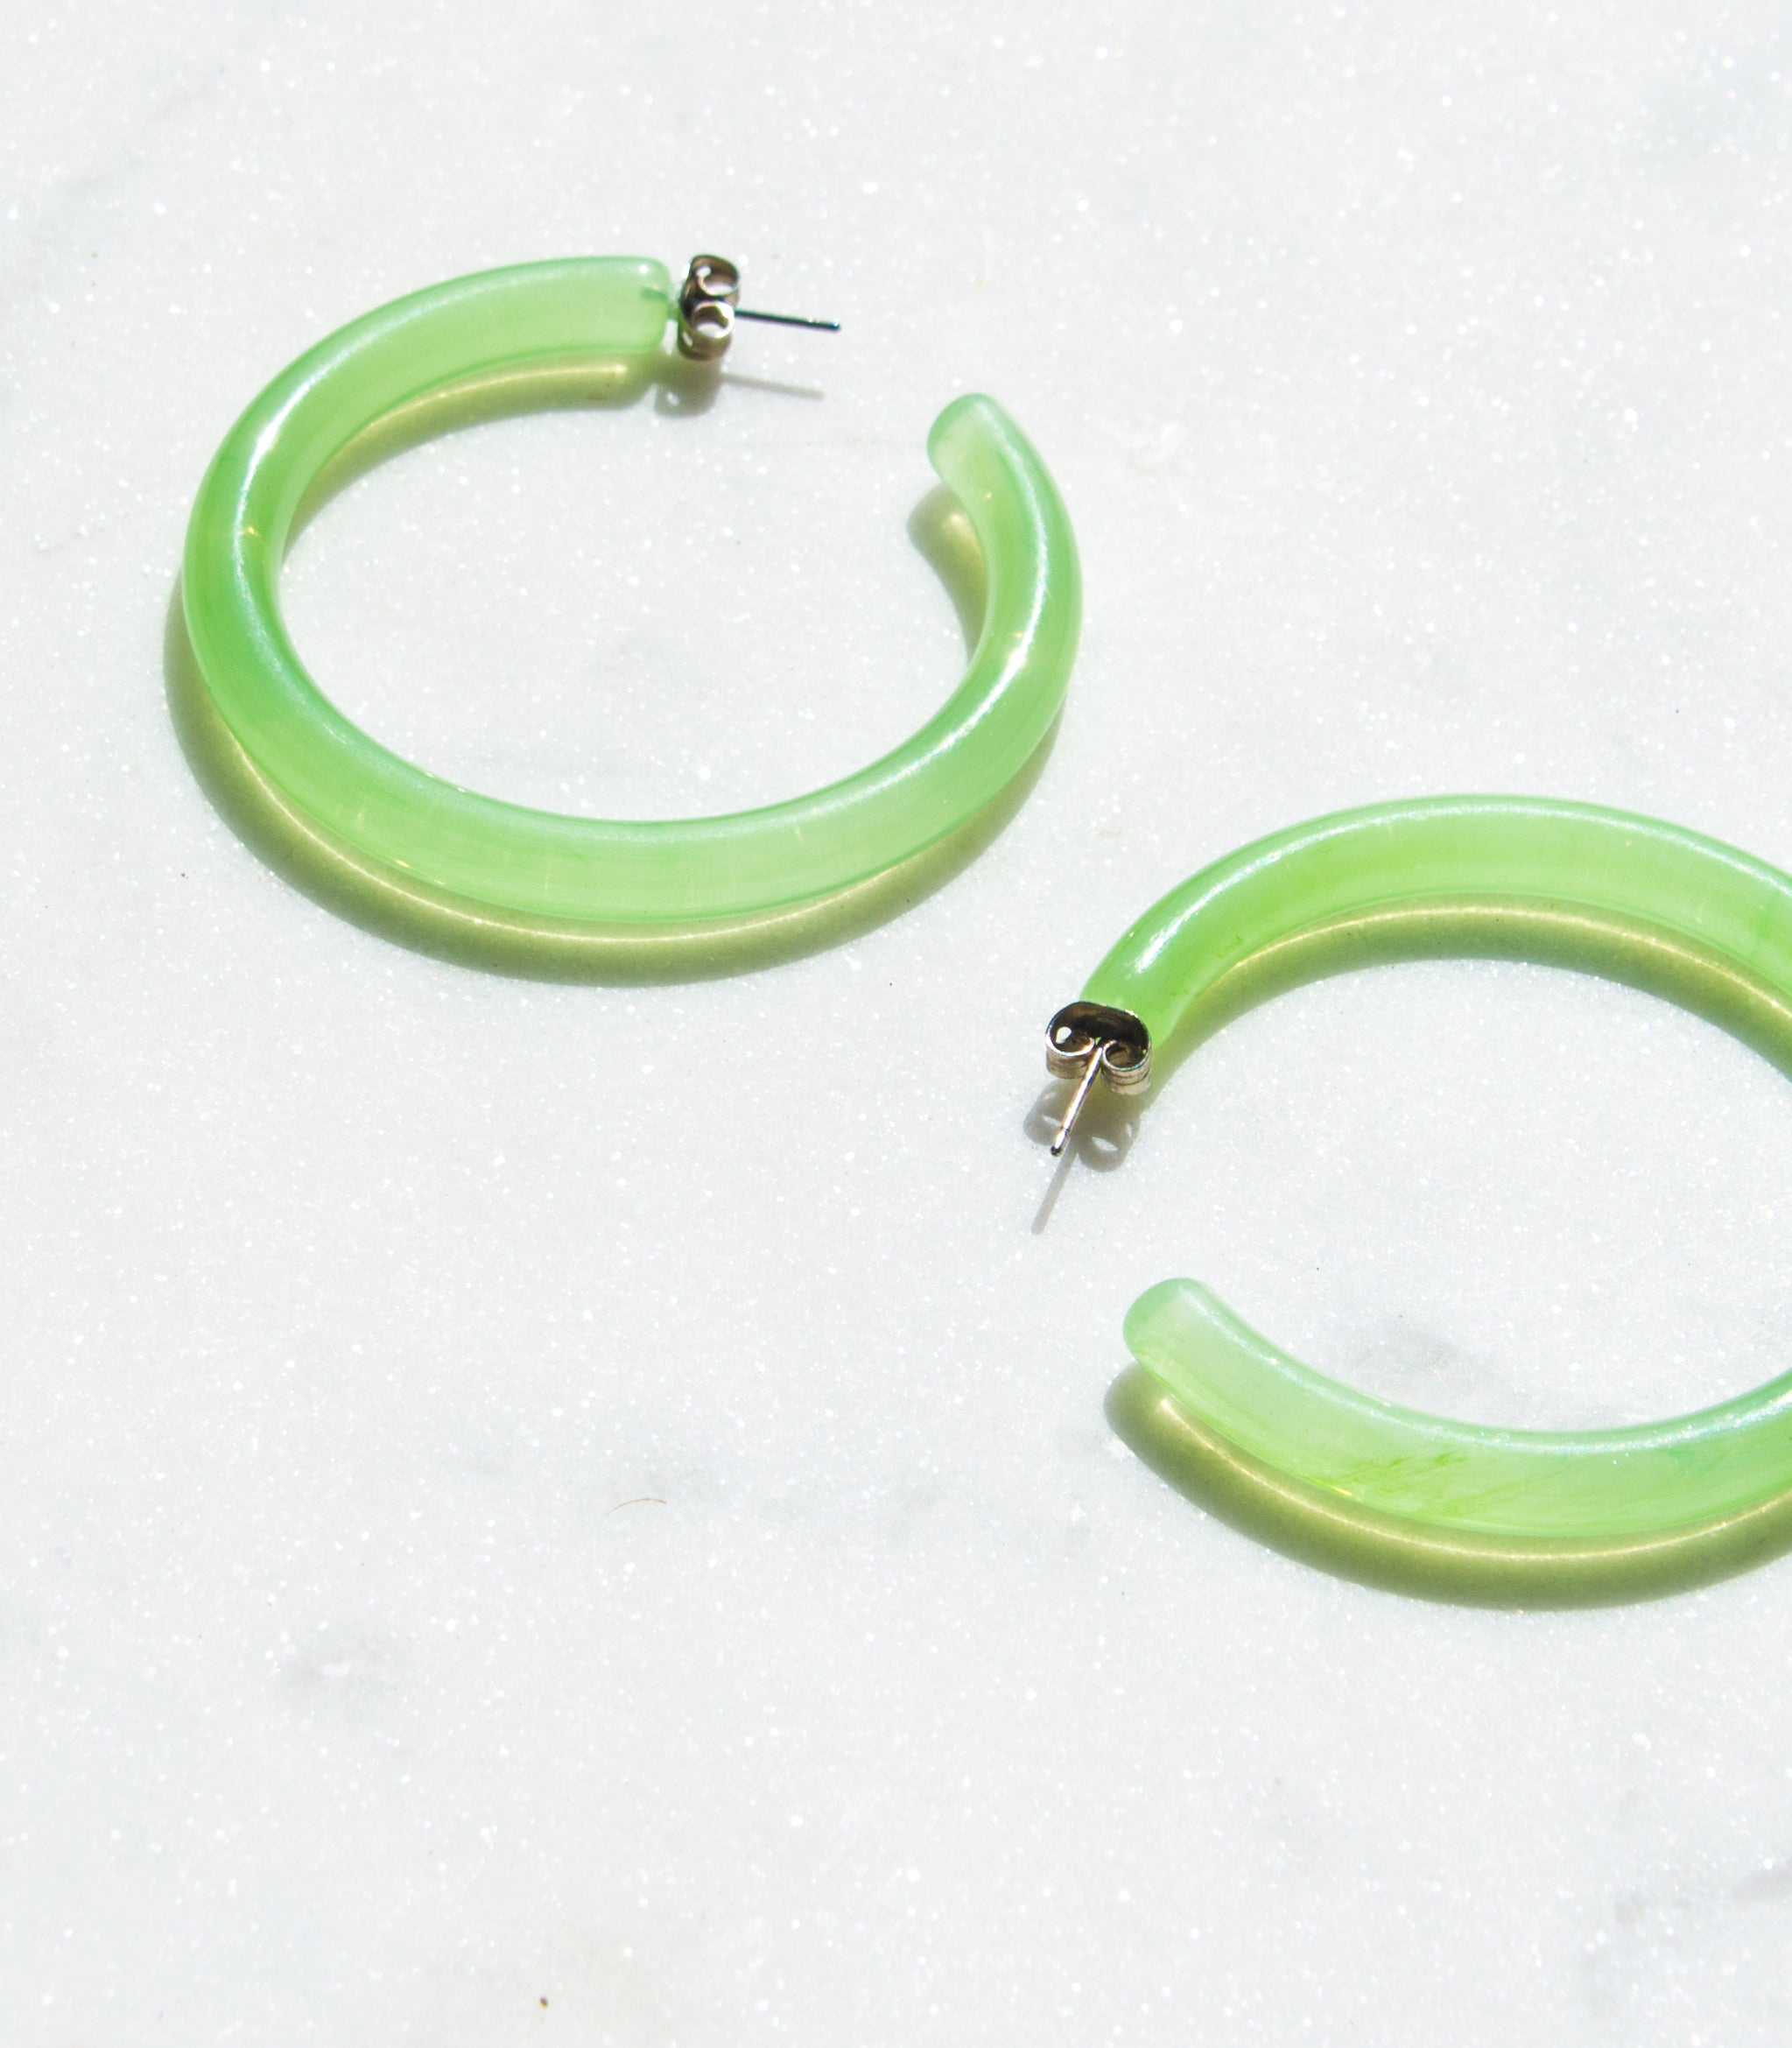 2 Inch Lucite Hoop Earrings in Lime